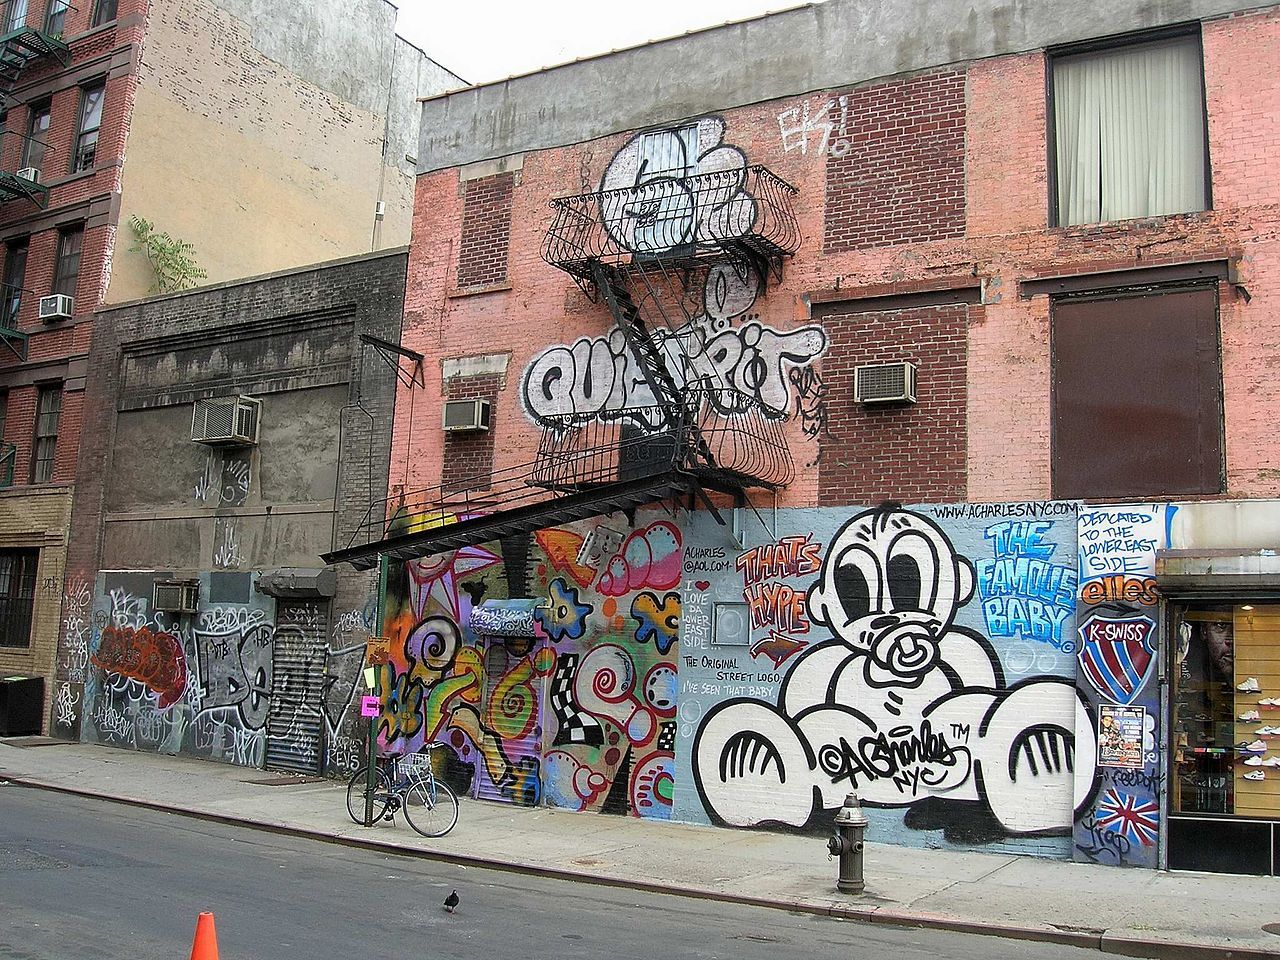 Artist Andre Charles Graffiti Lower East Side Nyc